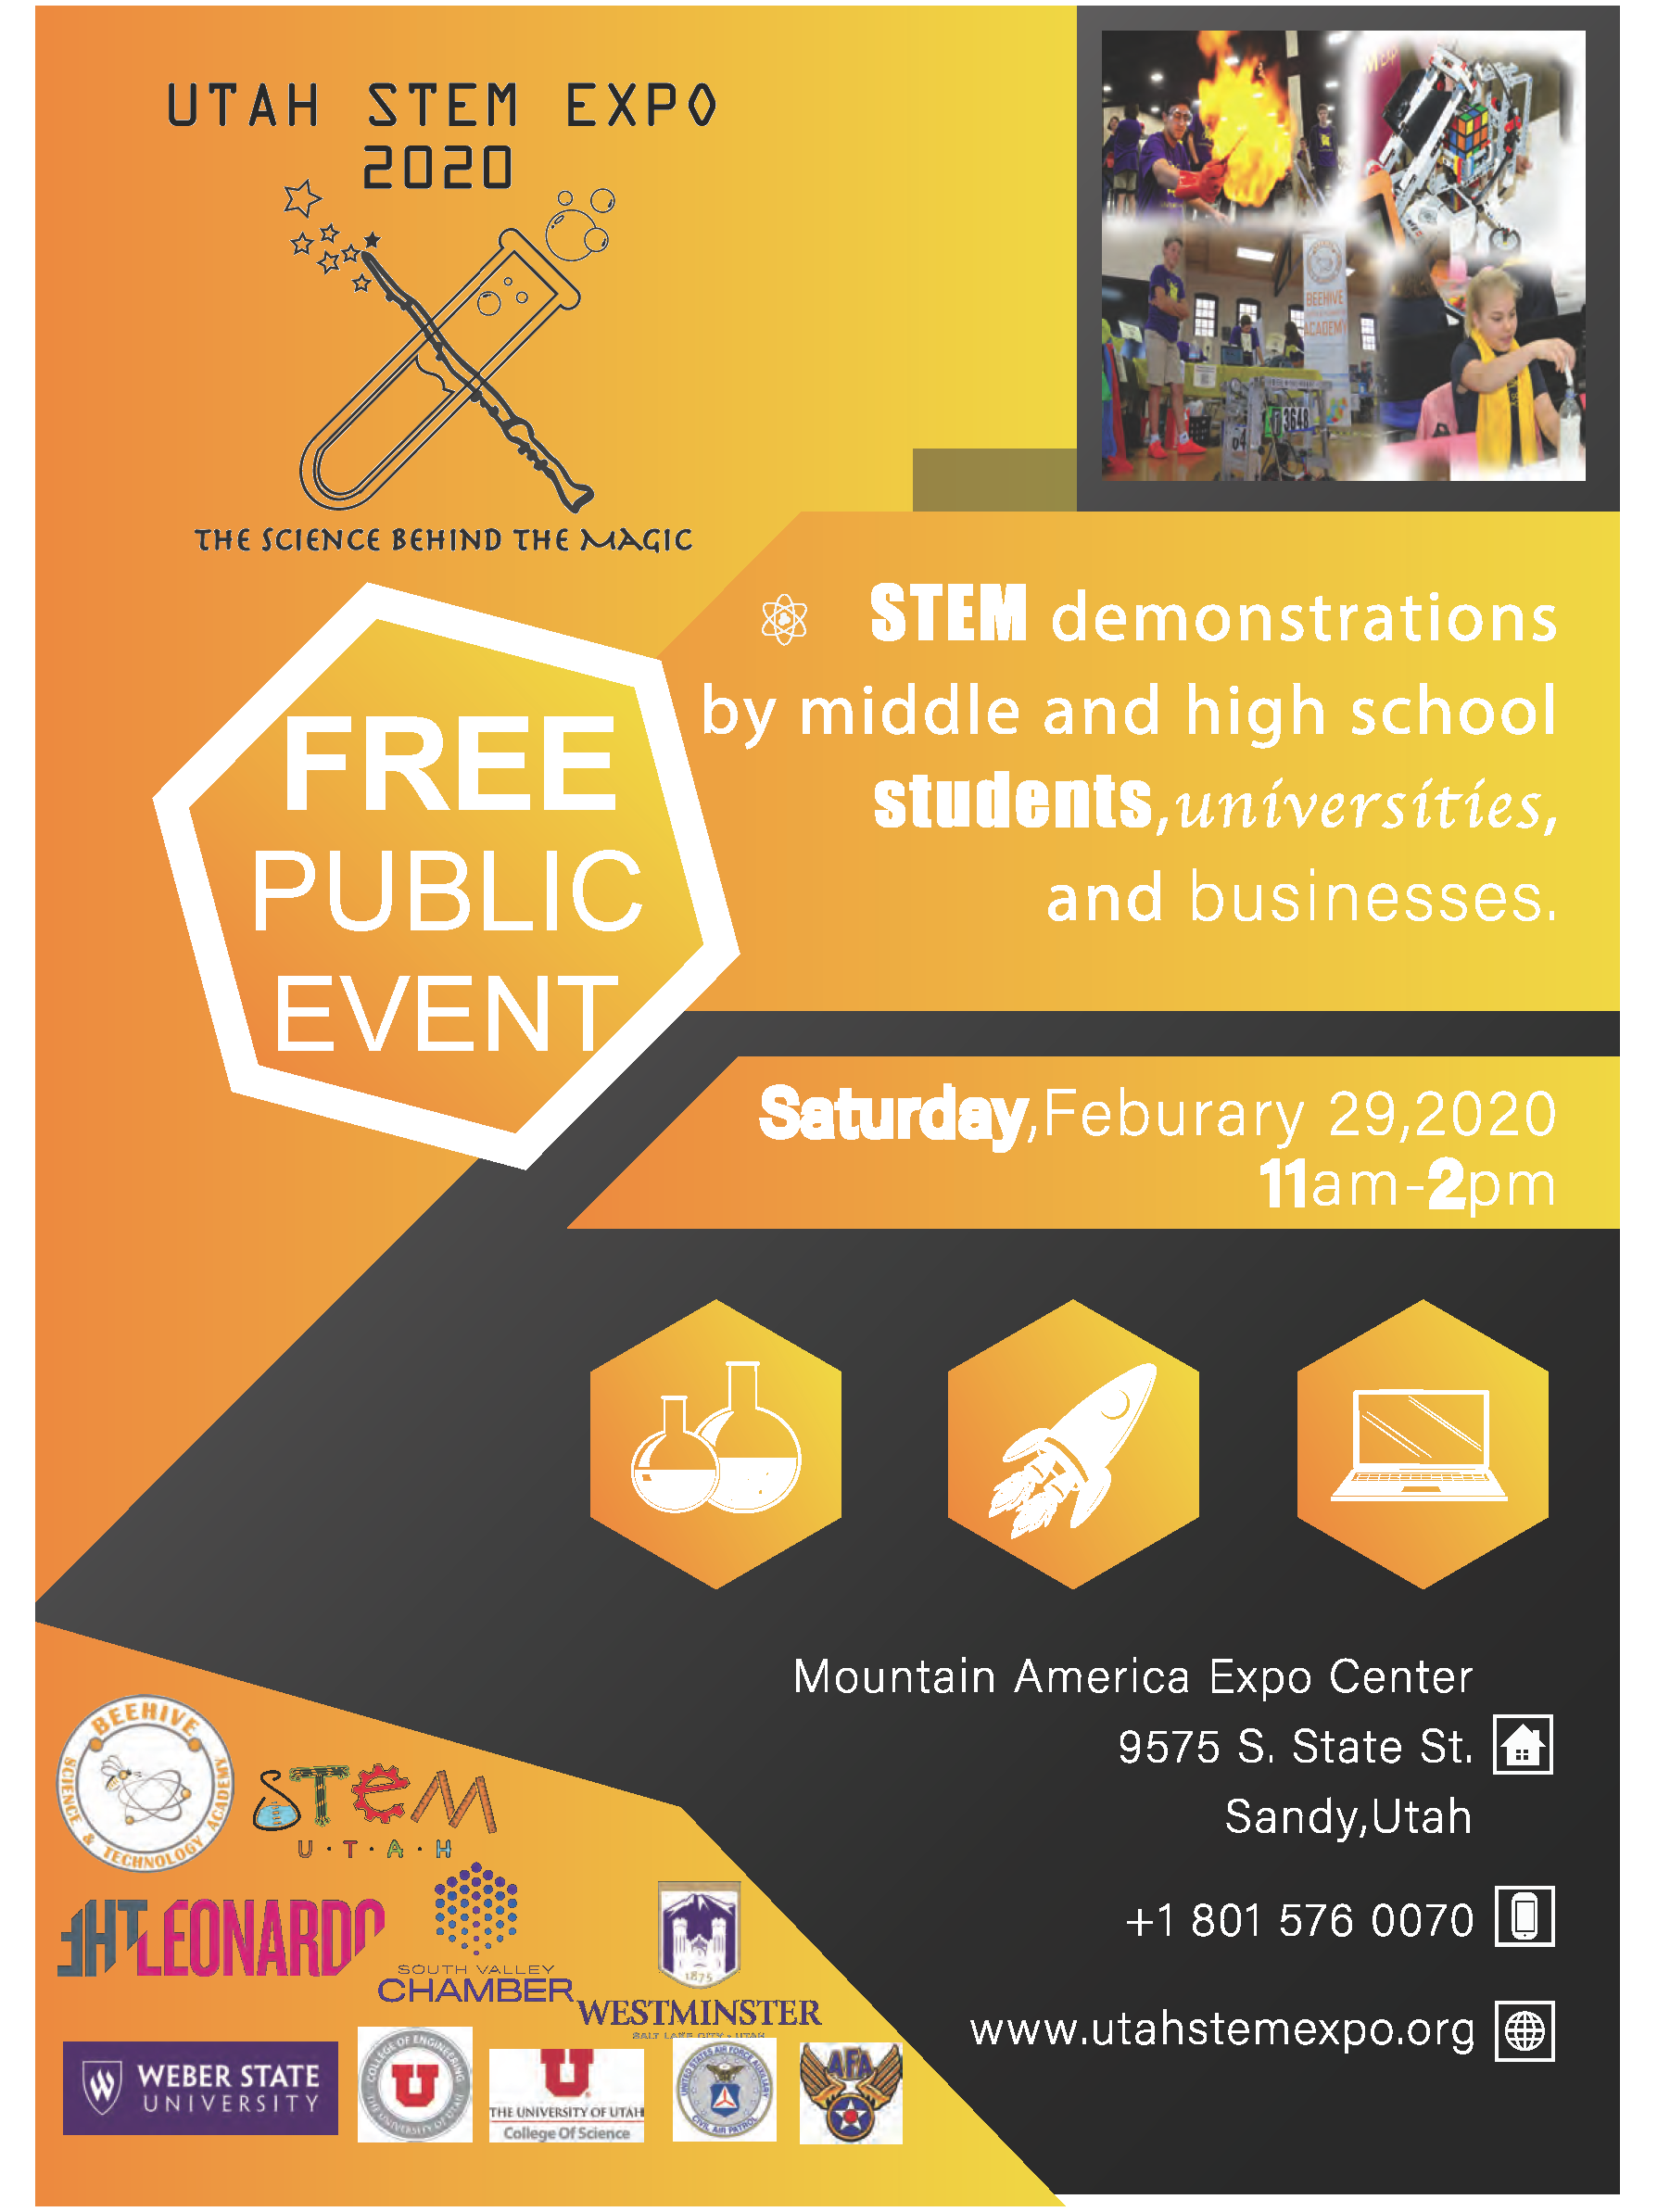 Utah Stem Expo, Beehive Science And Technology Academy At Throughout South Town Expo Schedule Utah